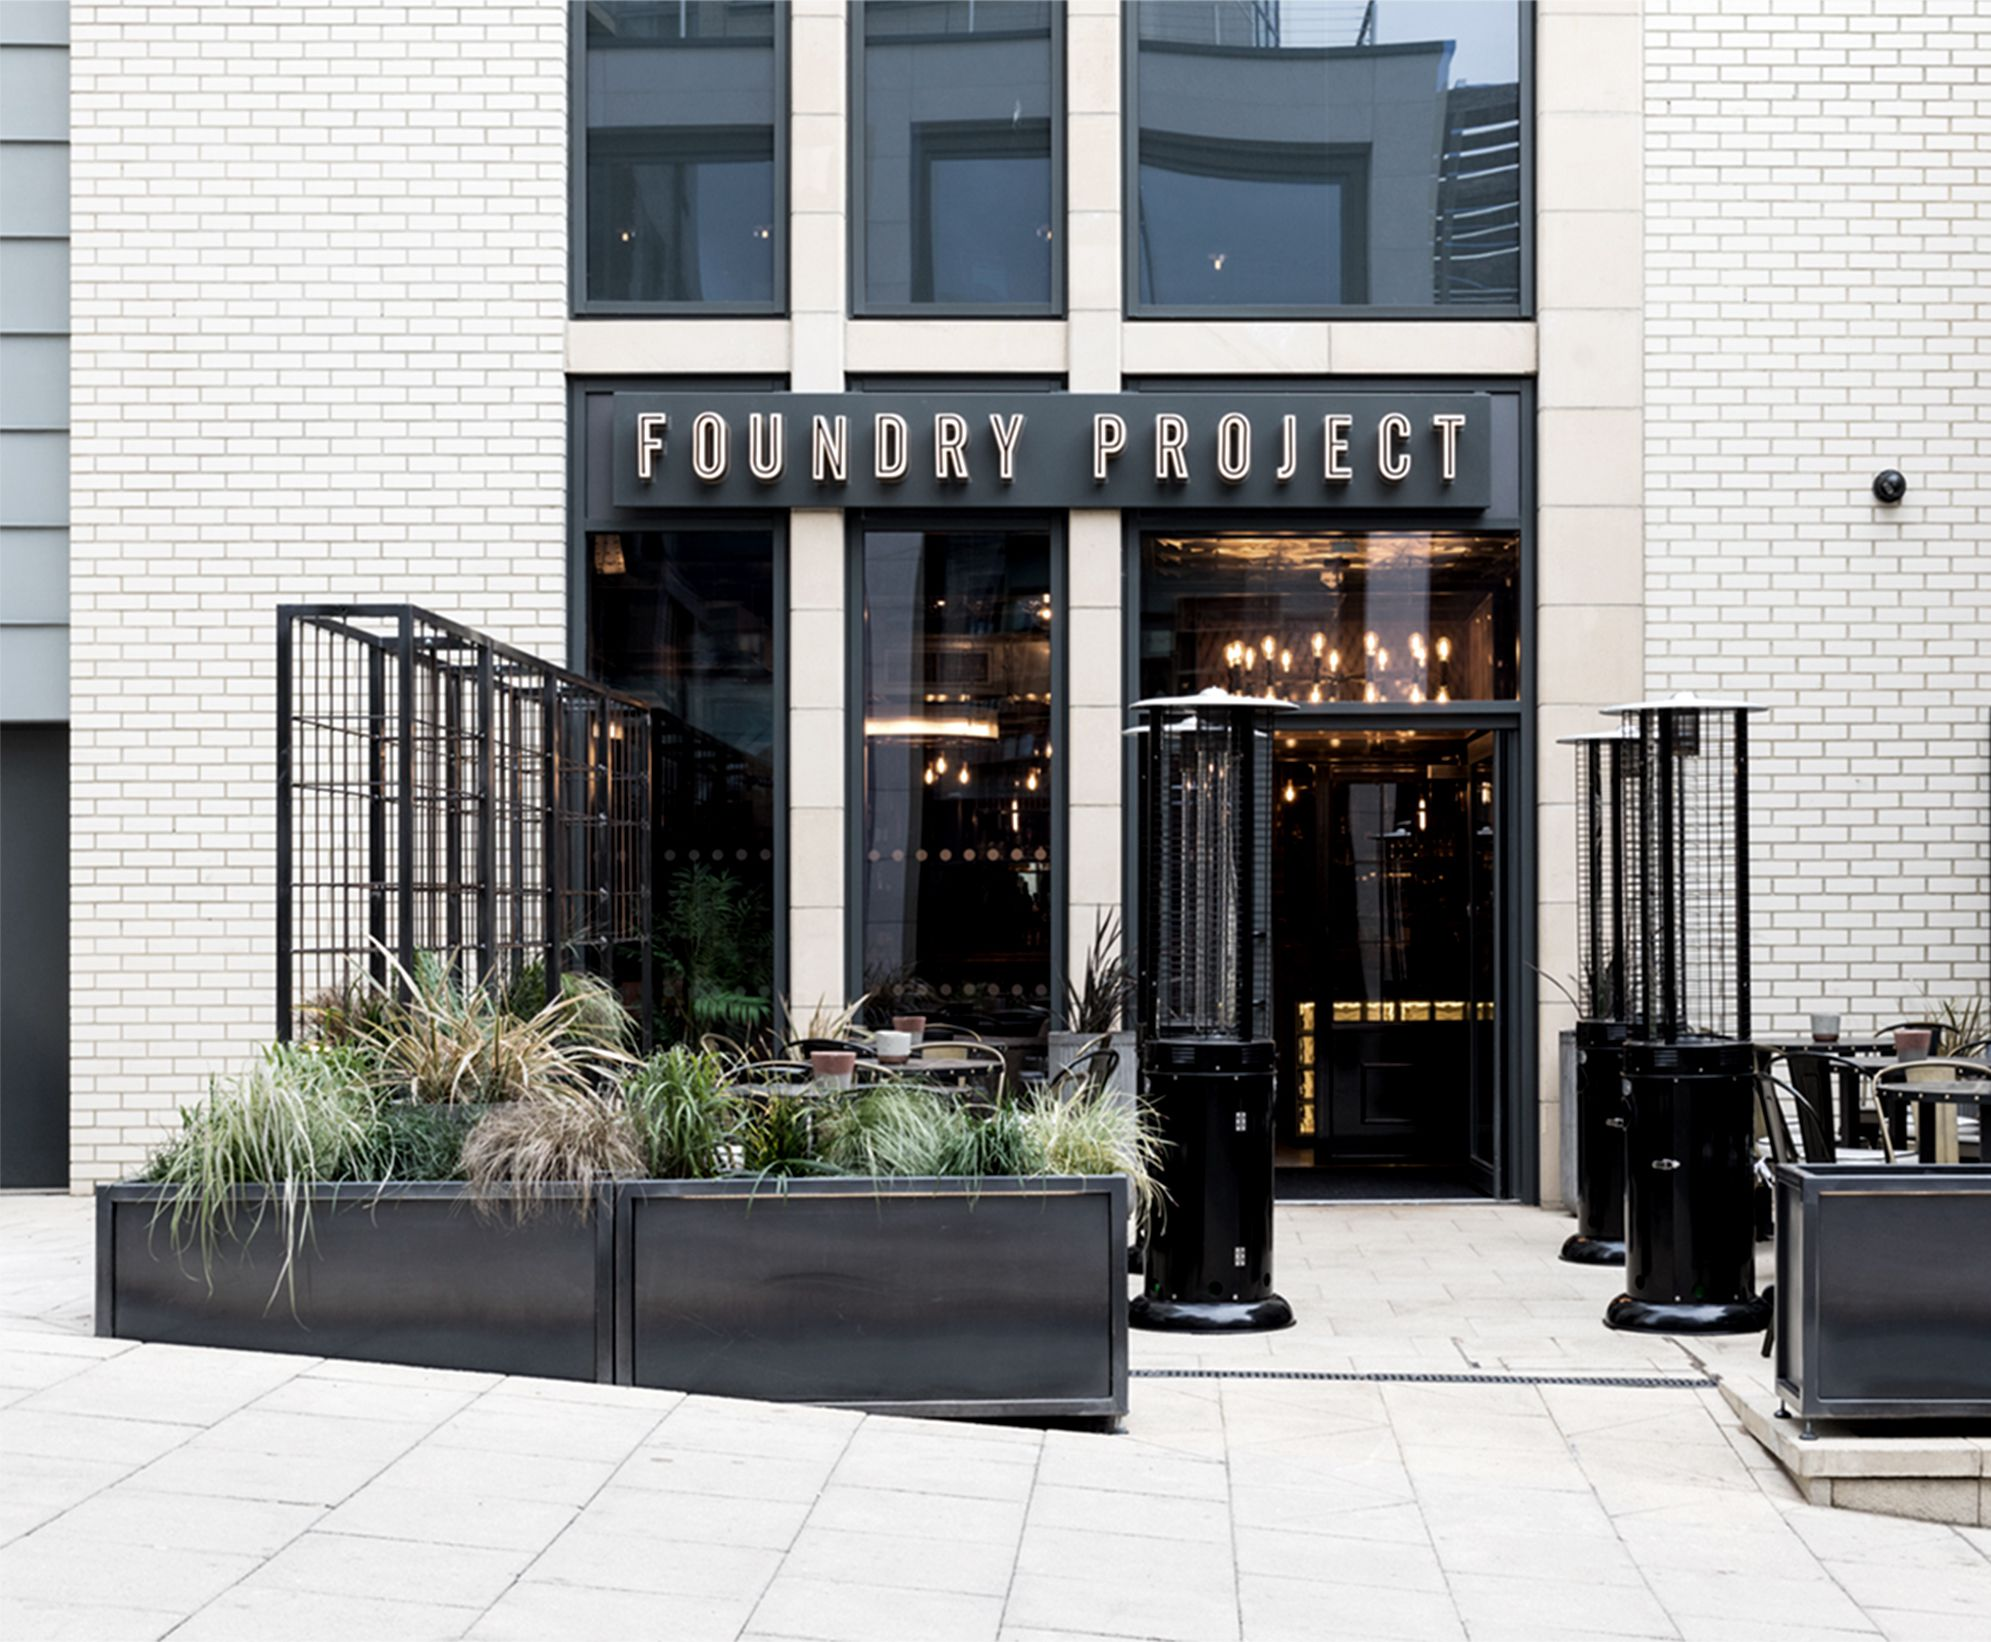 Foundry Project Shopfront